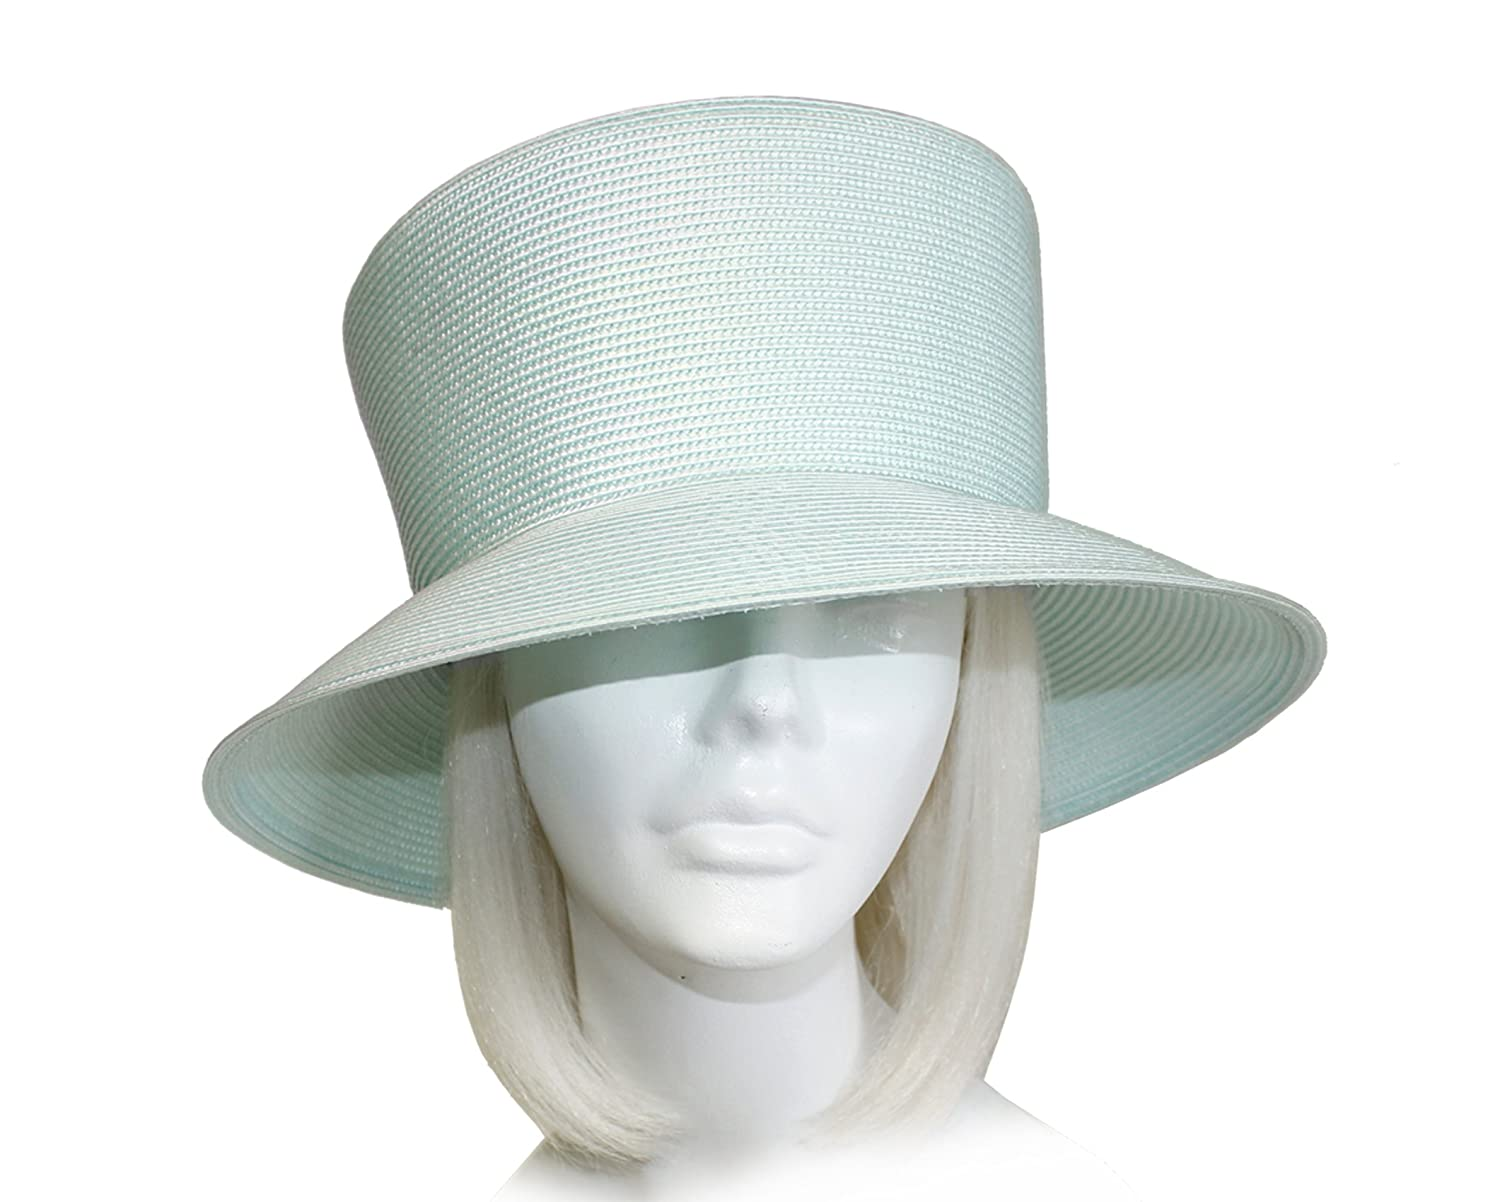 ad3f4ab5edd Mr. Song Millinery Tagline Straw Medium Brim Hat Body (UNTRIMMED HAT ONLY)  1073B at Amazon Women s Clothing store